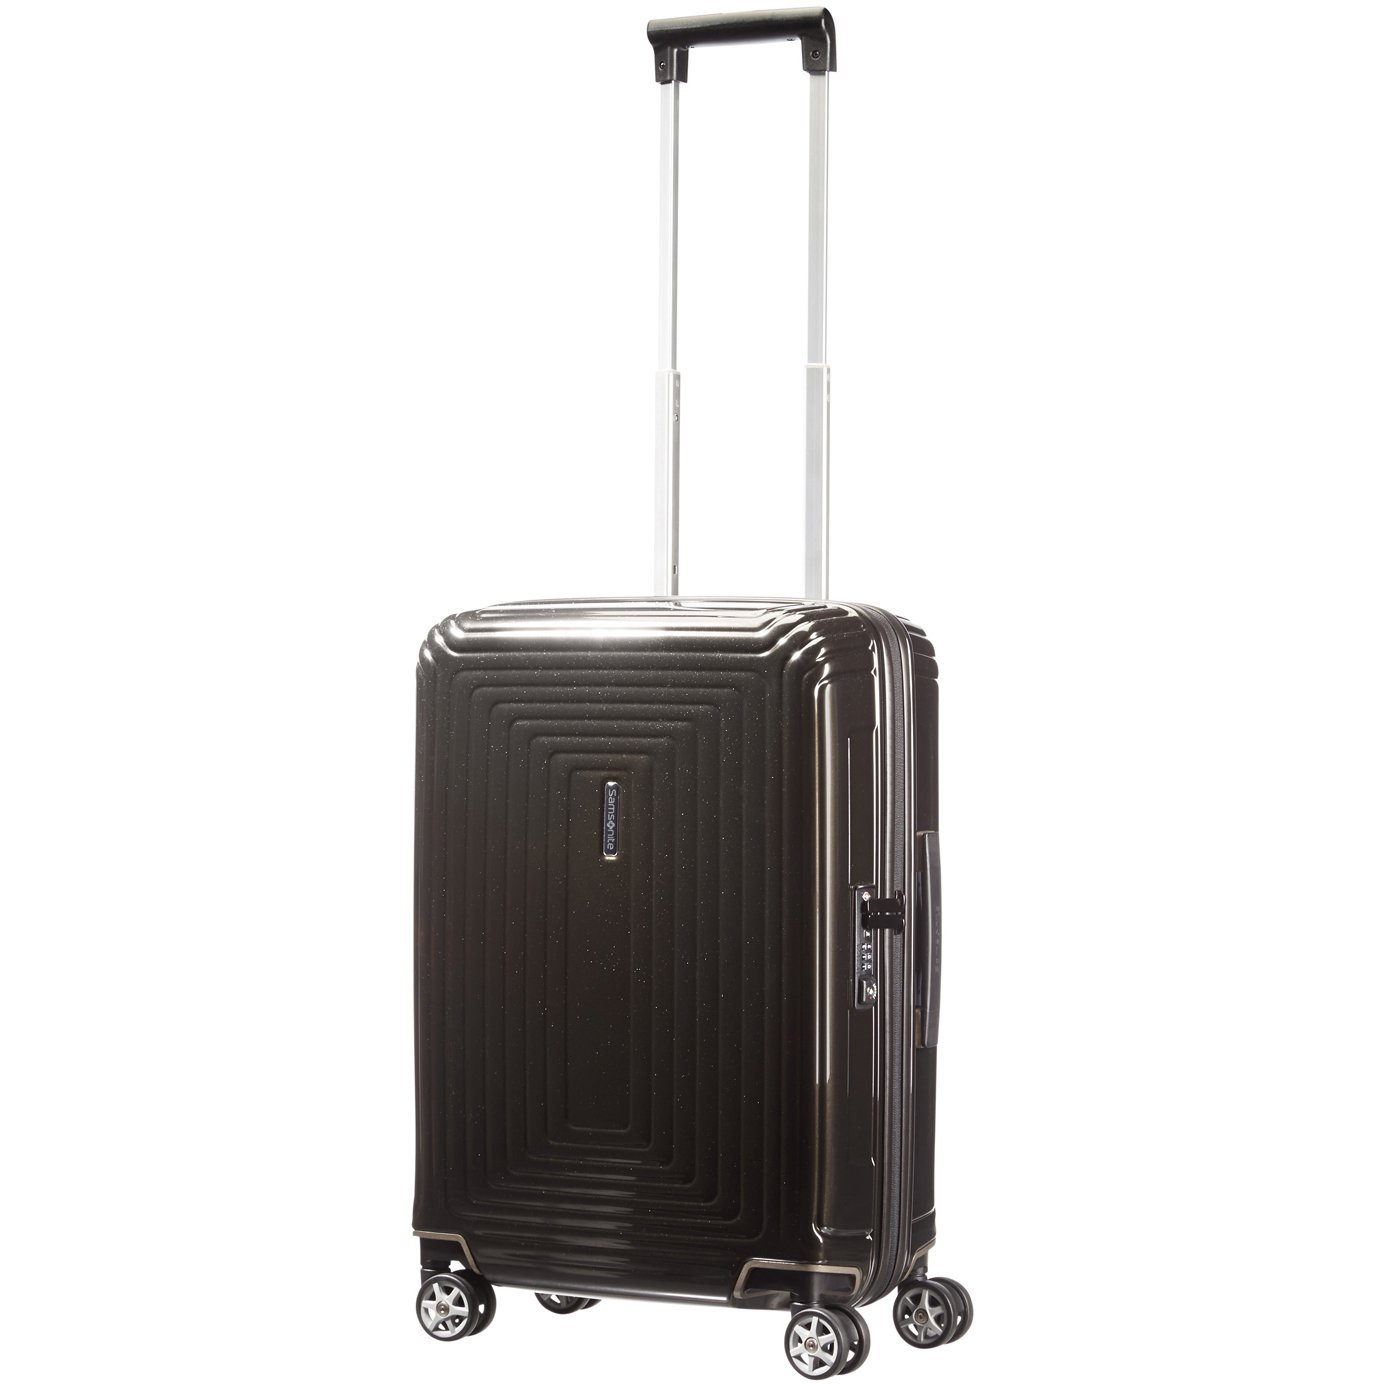 Samsonite Neopulse Spinner, S (55cm-38L), METALLIC BLACK